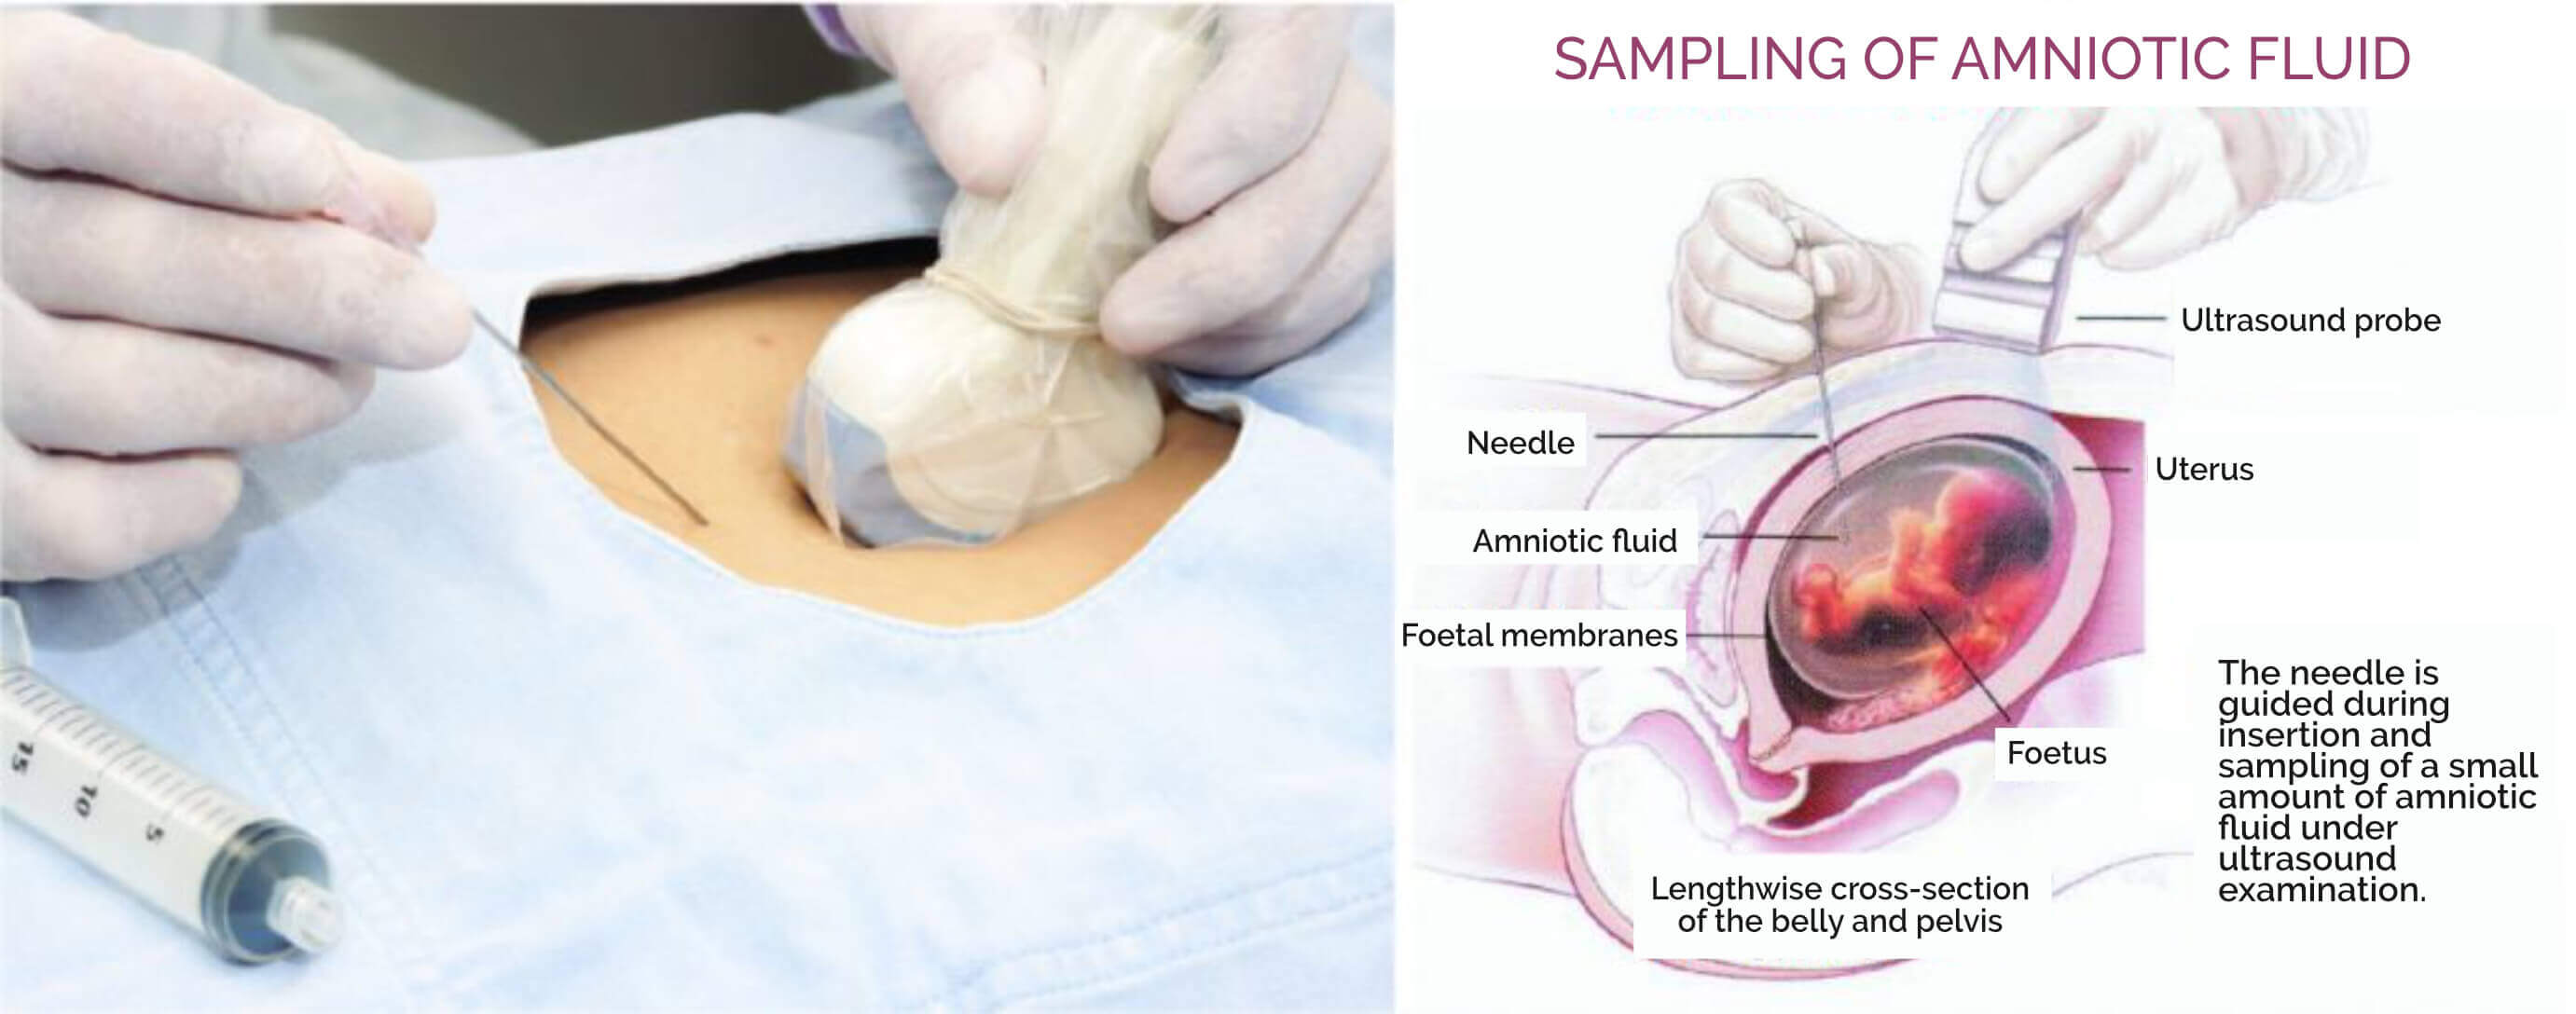 SAMPLING OF AMNIOTIC FLUID